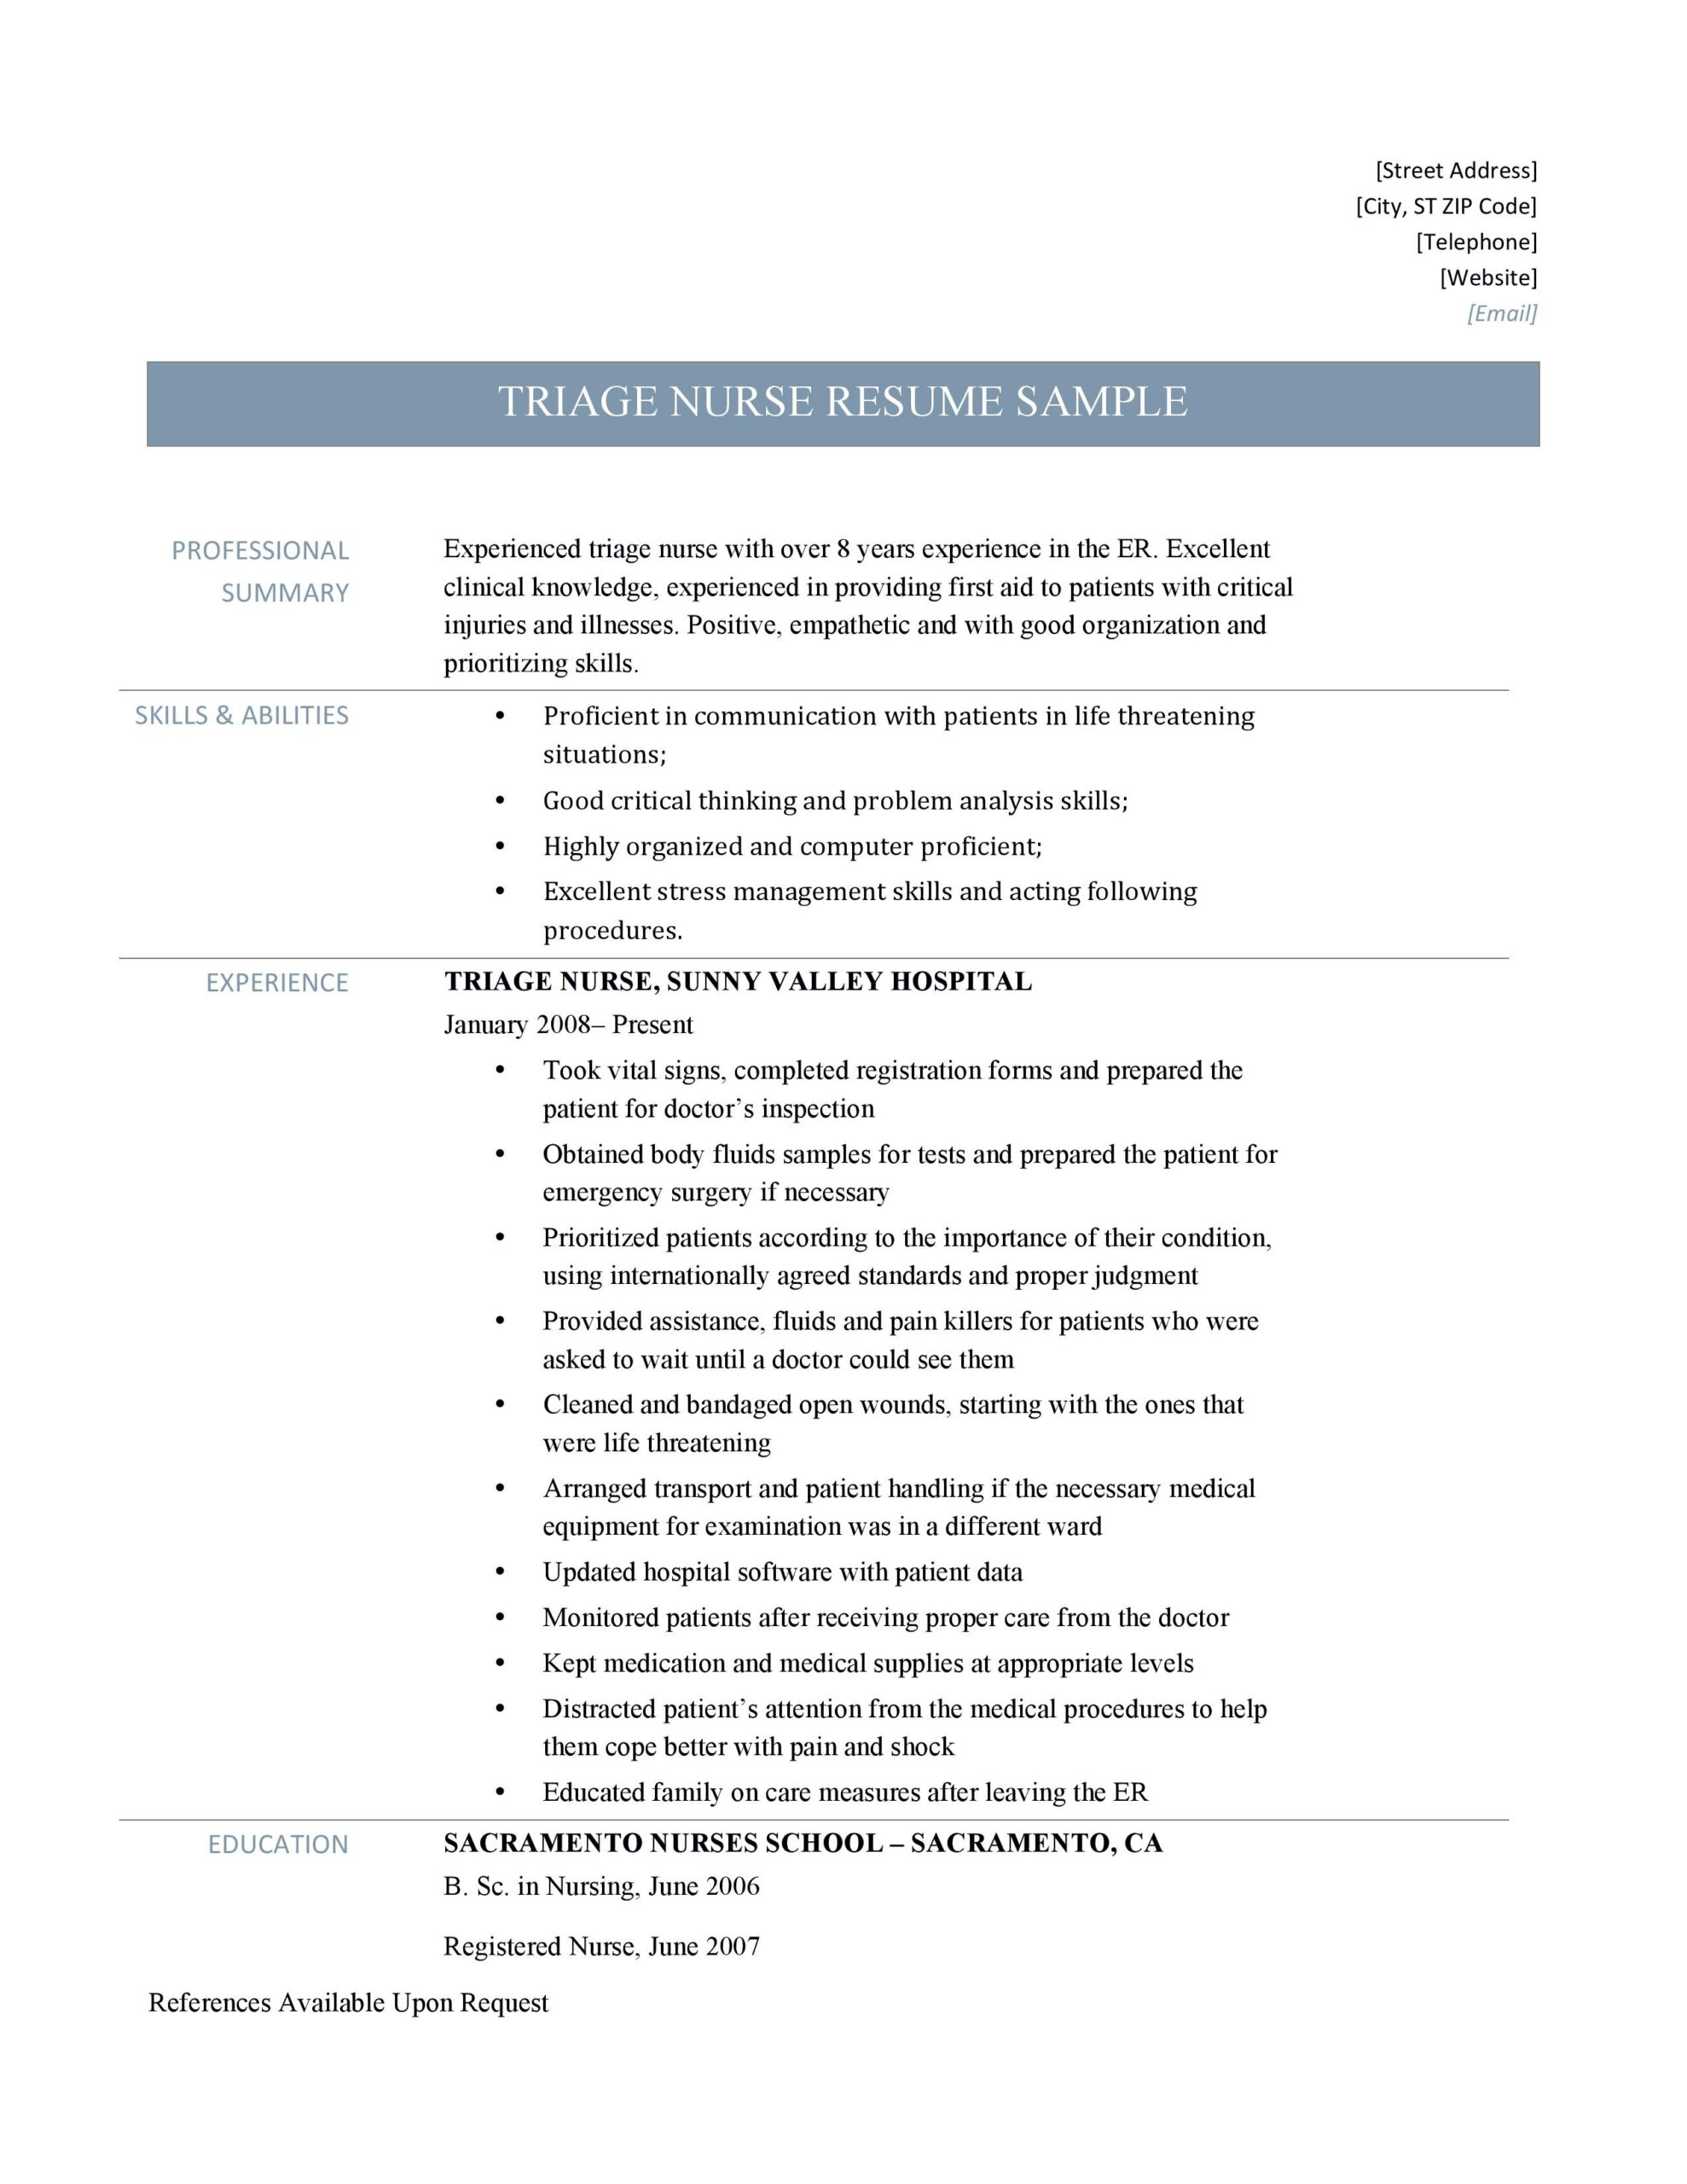 triage nurse resume sample and job description by builders medium professional summary Resume Professional Summary For Nursing Resume